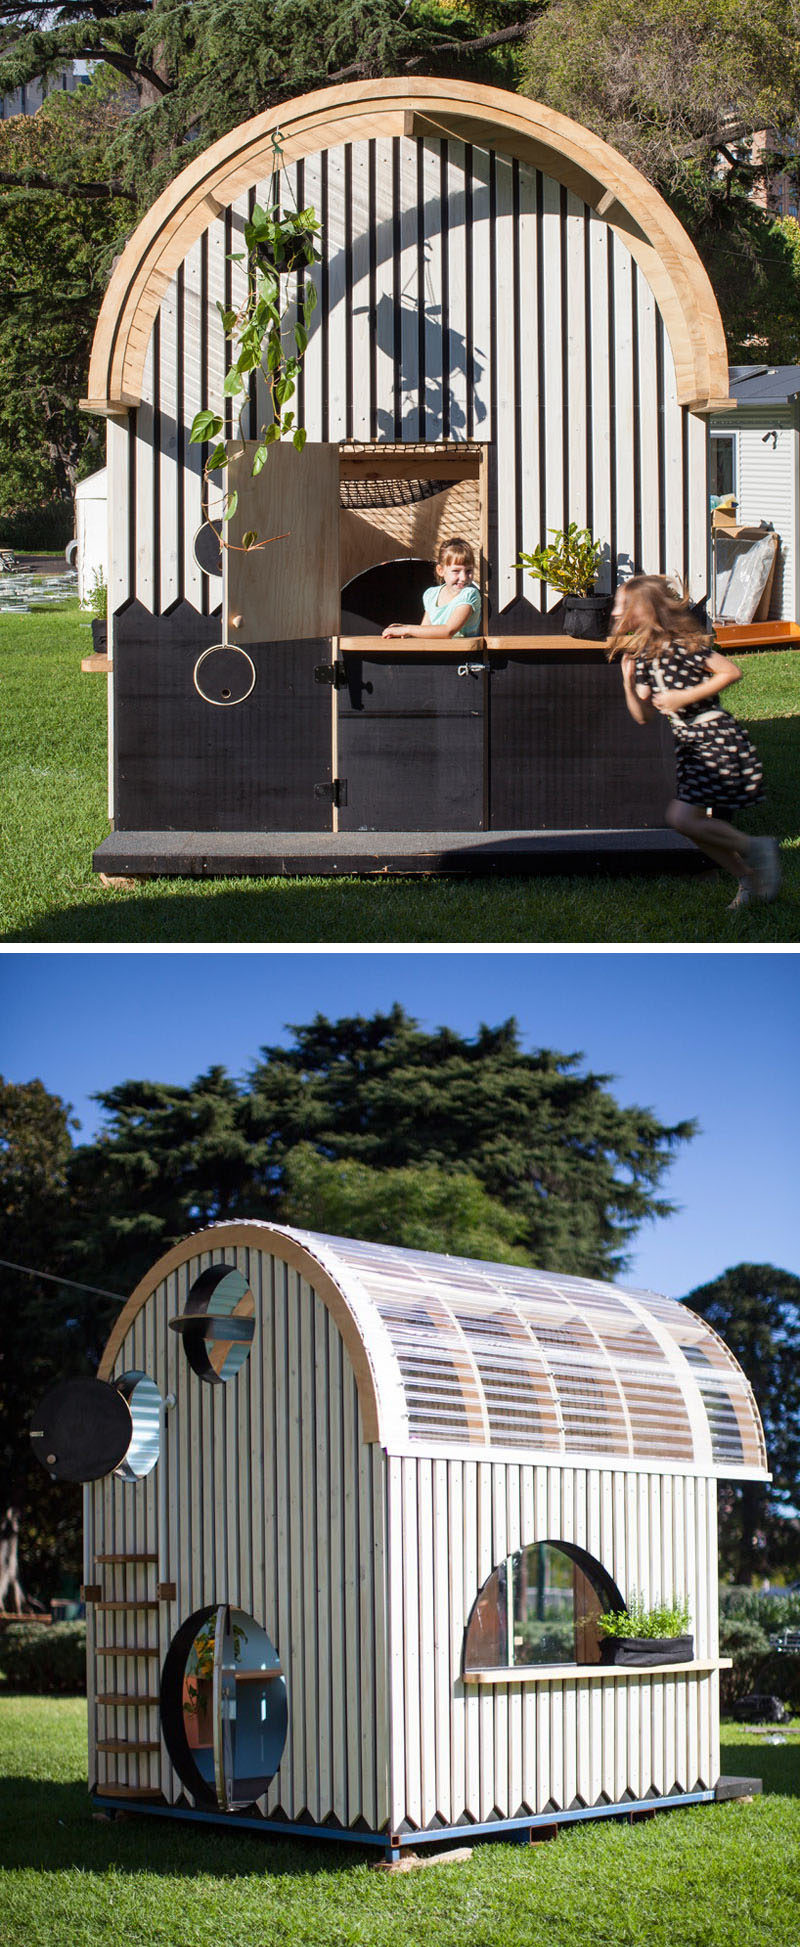 This Modern Playhouse Is Designed For Kids